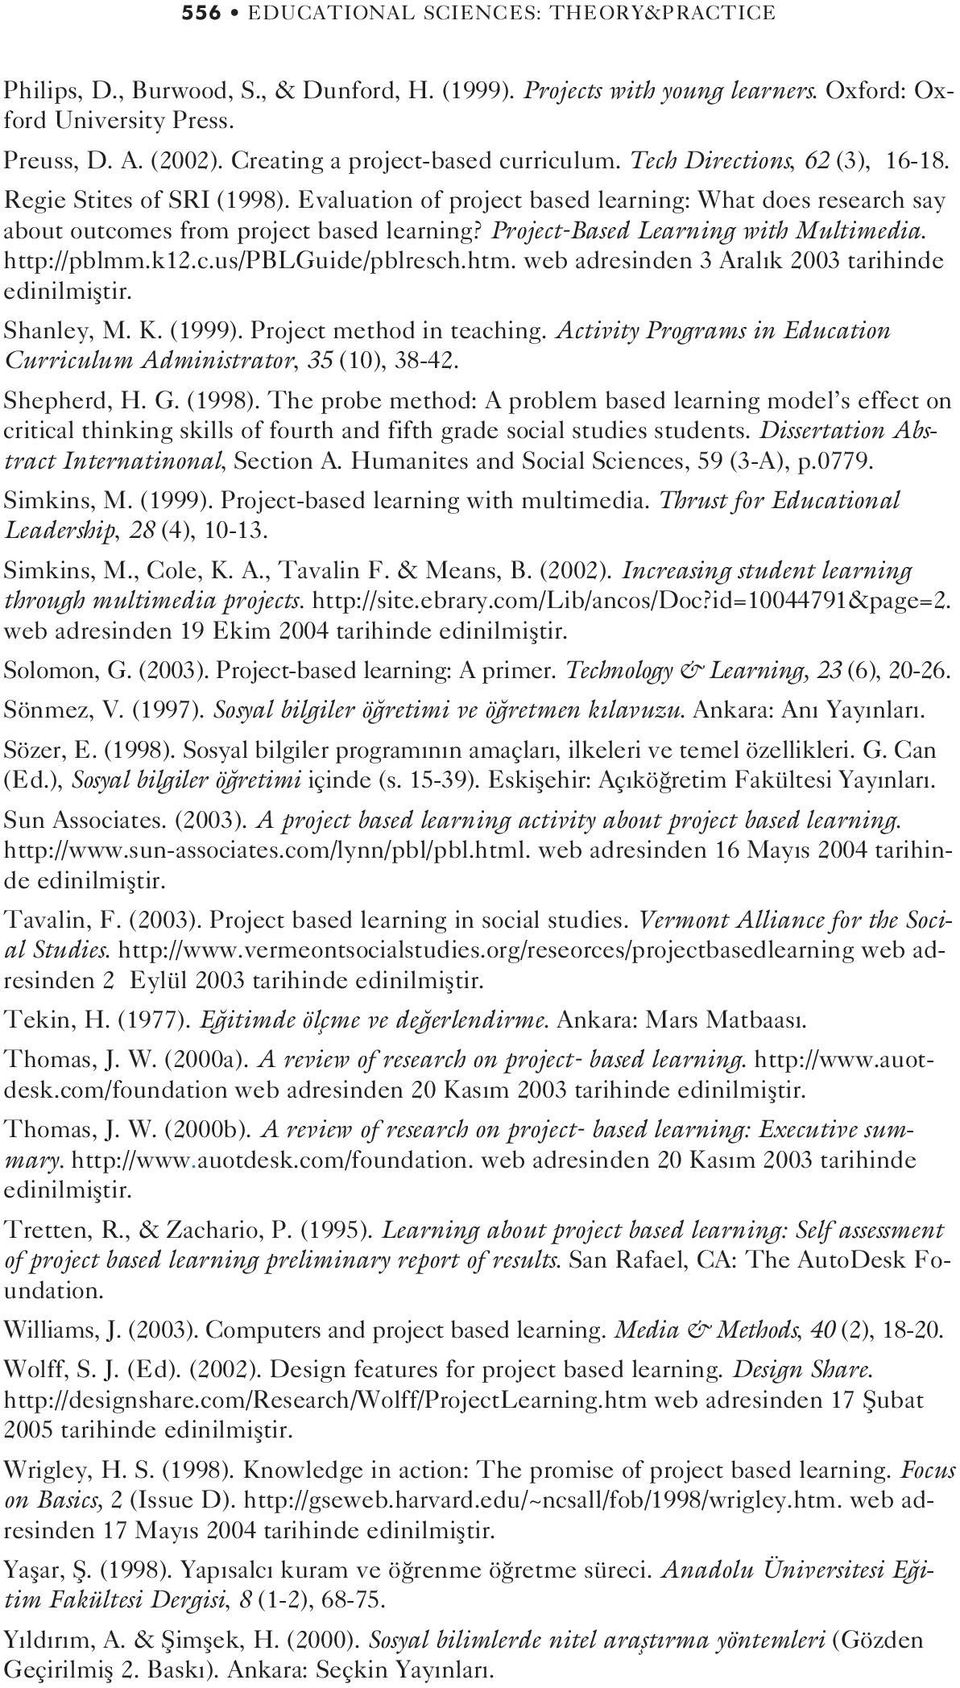 The Effect of Project Based Learning on Learning Outcomes in